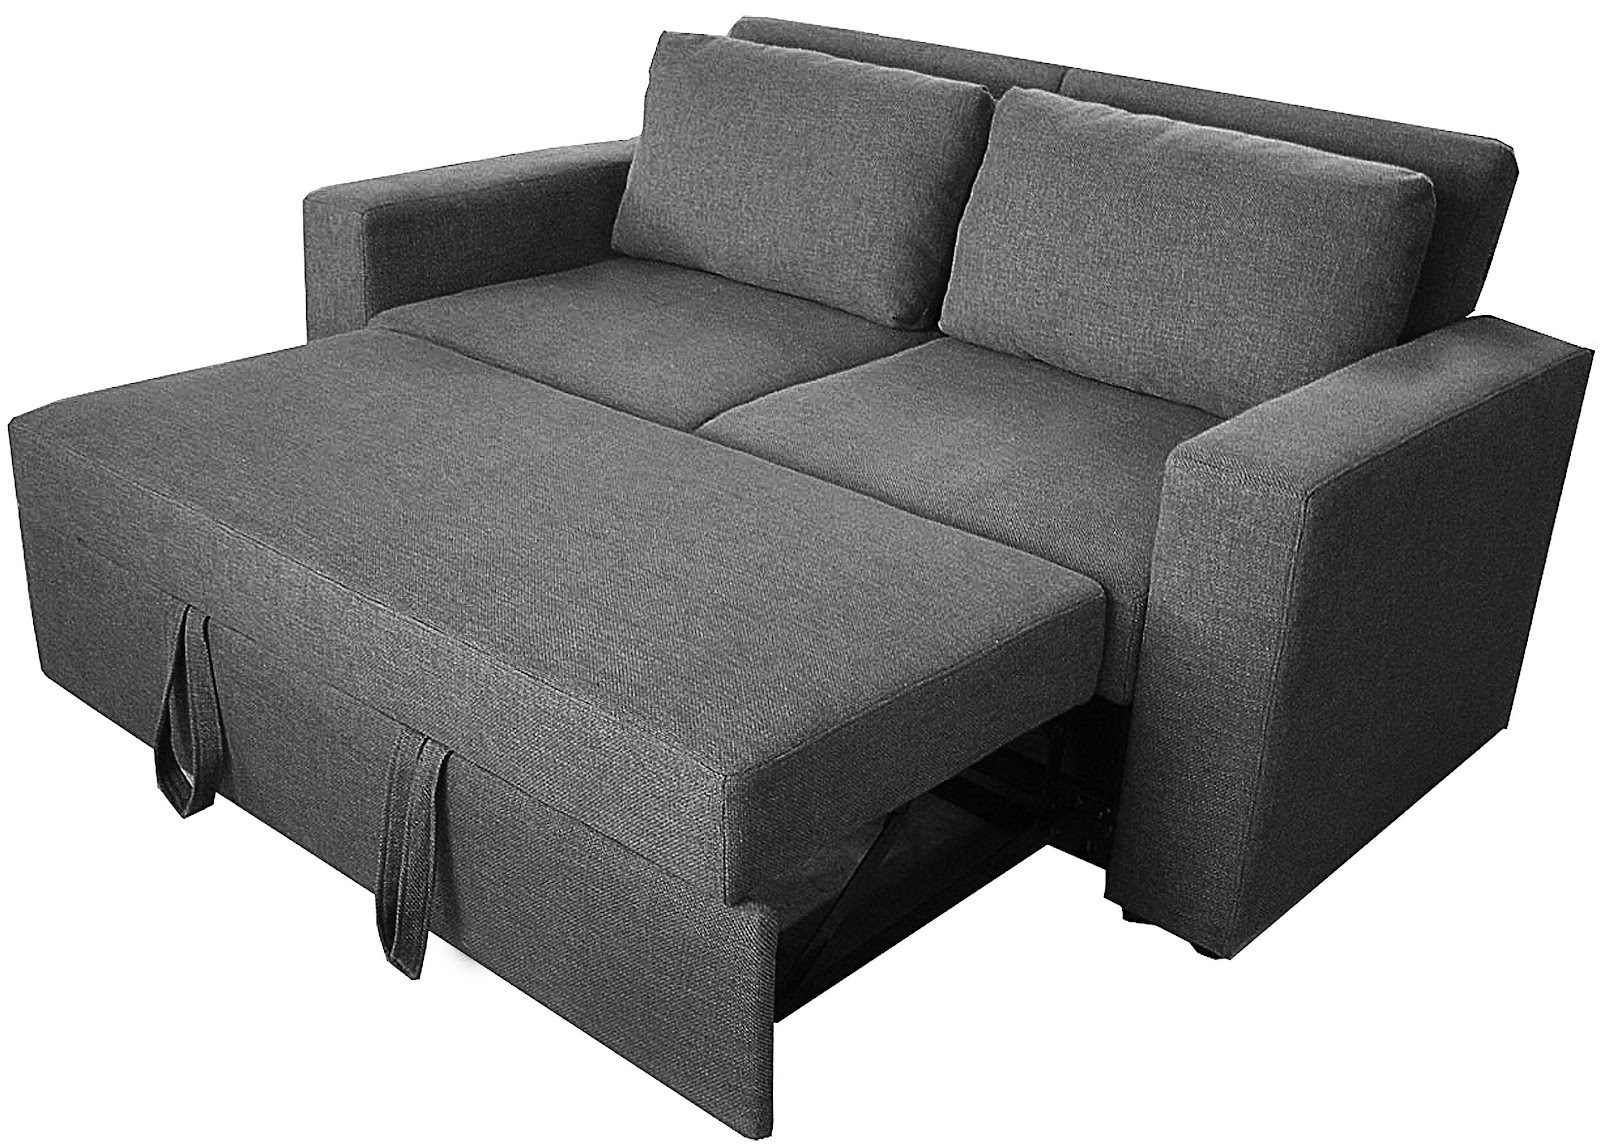 - View Photos Of Ikea Loveseat Sleeper Sofas (Showing 18 Of 20 Photos)